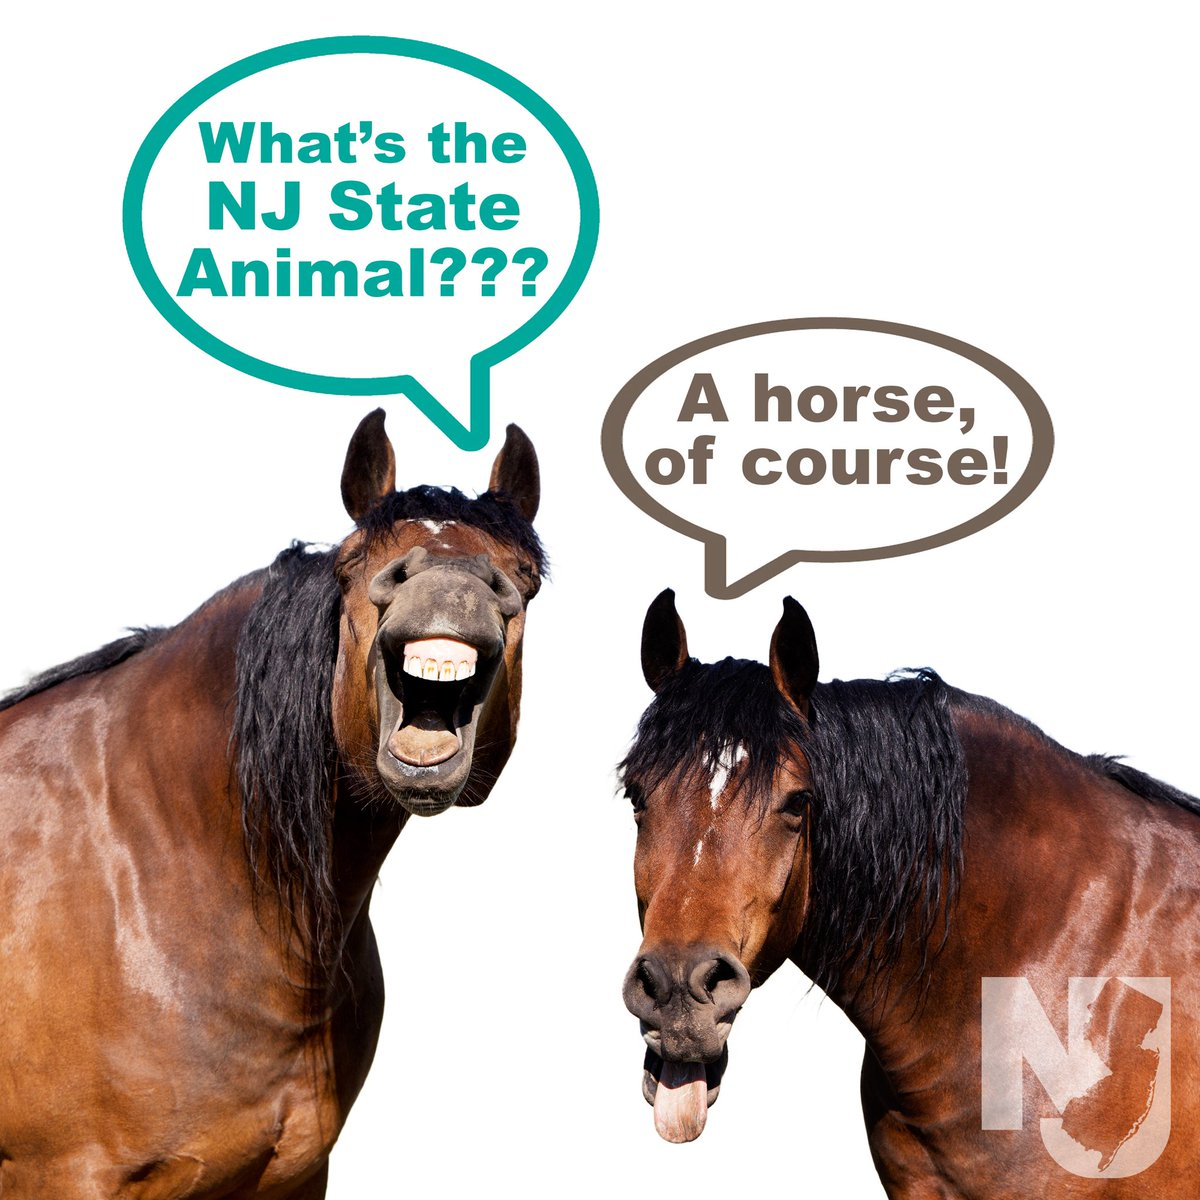 New Jersey On Twitter New Jersey Loves Horses And Horses Love New Jersey Did You Know That New Jersey Has More Horses Per Square Mile Than Any Other State It S Only Fitting